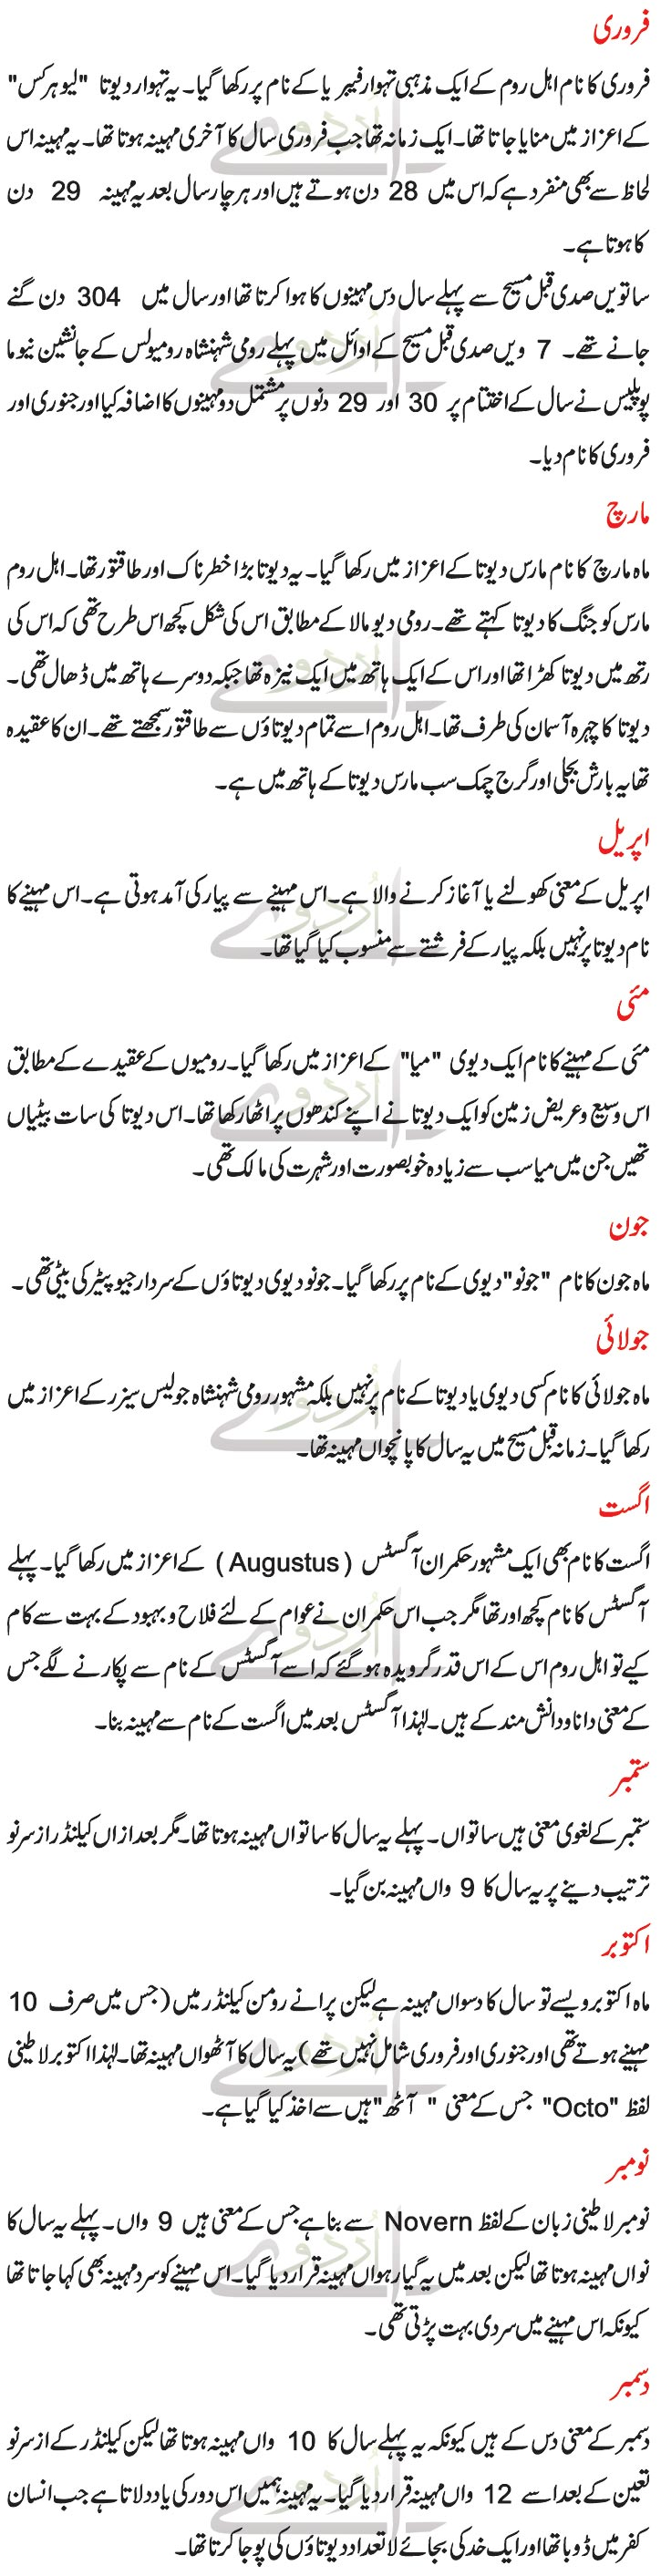 Interesting Facts About Months in Urdu